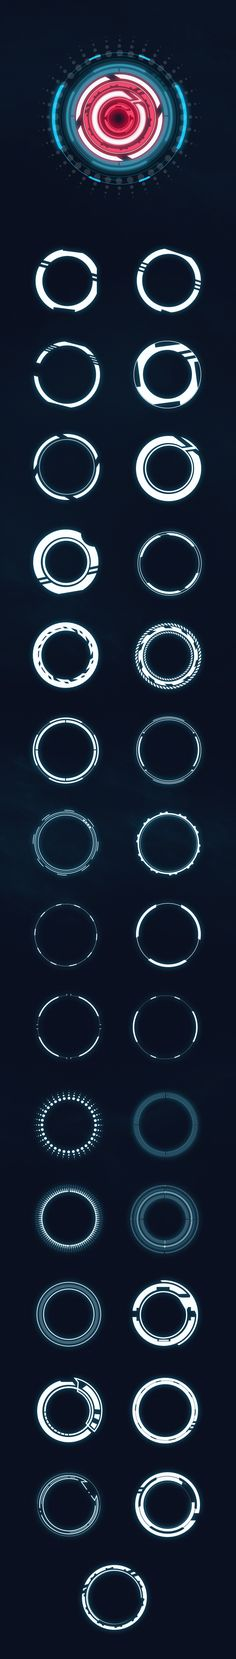 Hi-tech HUD circles - Custom Shapes - Shapes Photoshop